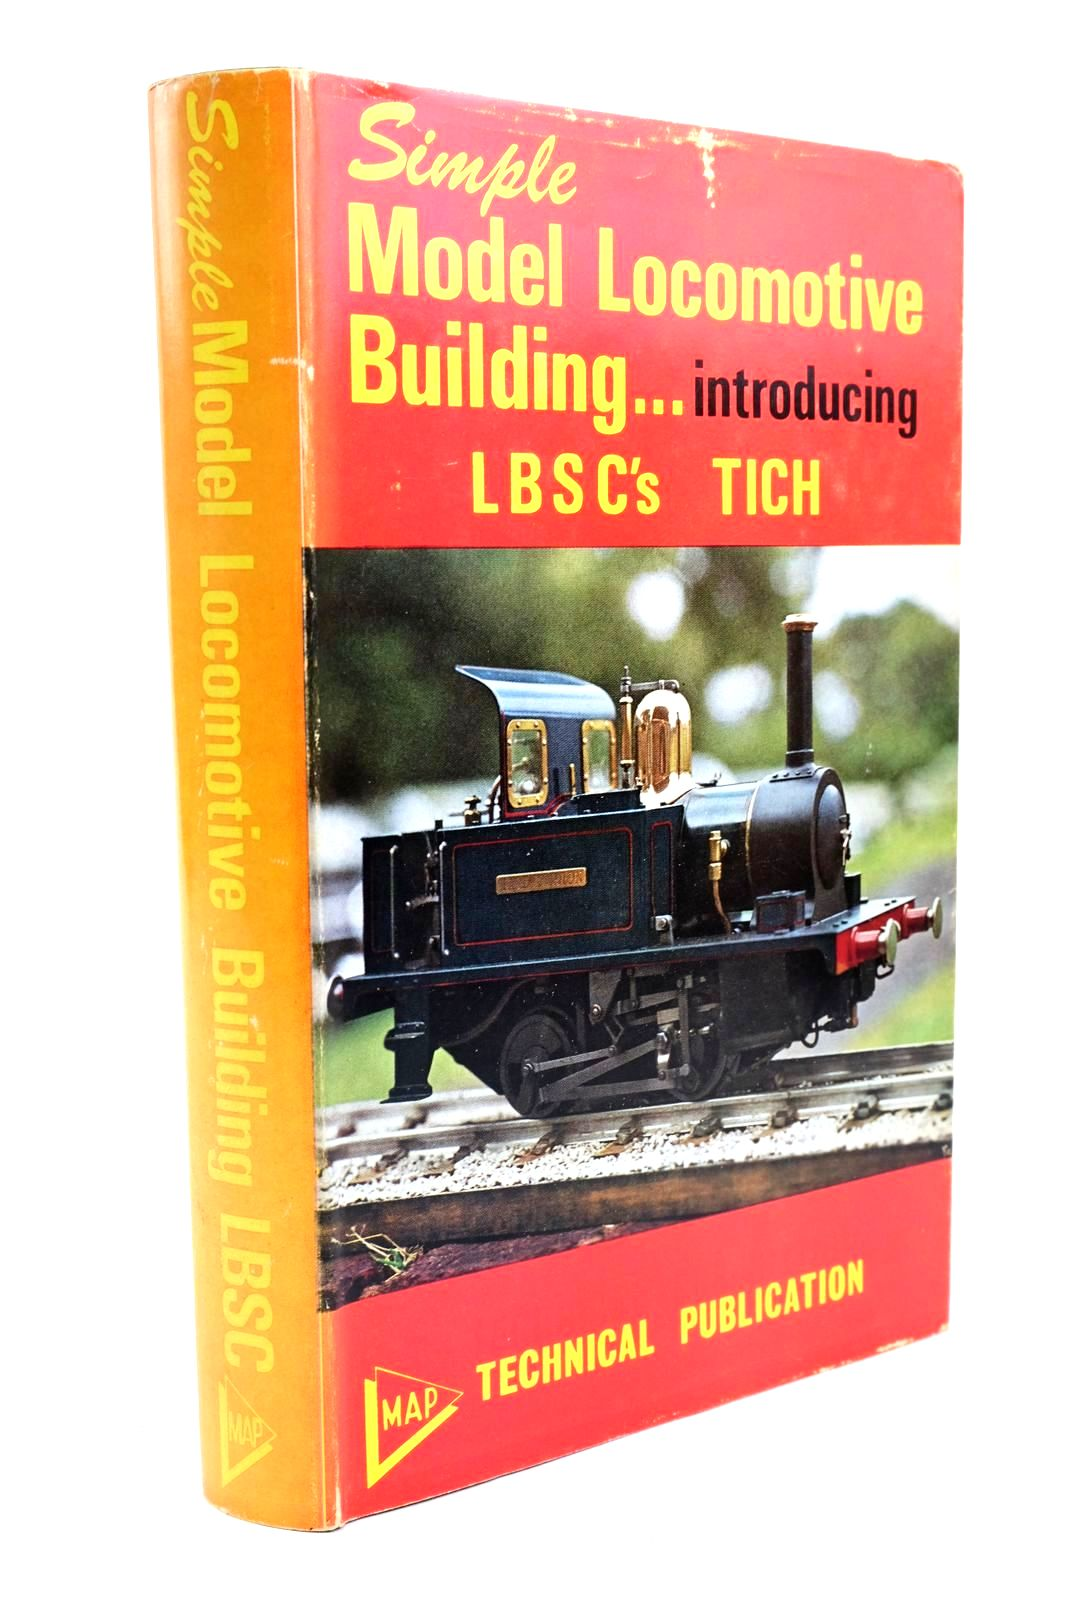 Photo of SIMPLE MODEL LOCOMOTIVE BUILDING written by Evans, Martin published by Model & Allied Publications (STOCK CODE: 1321478)  for sale by Stella & Rose's Books